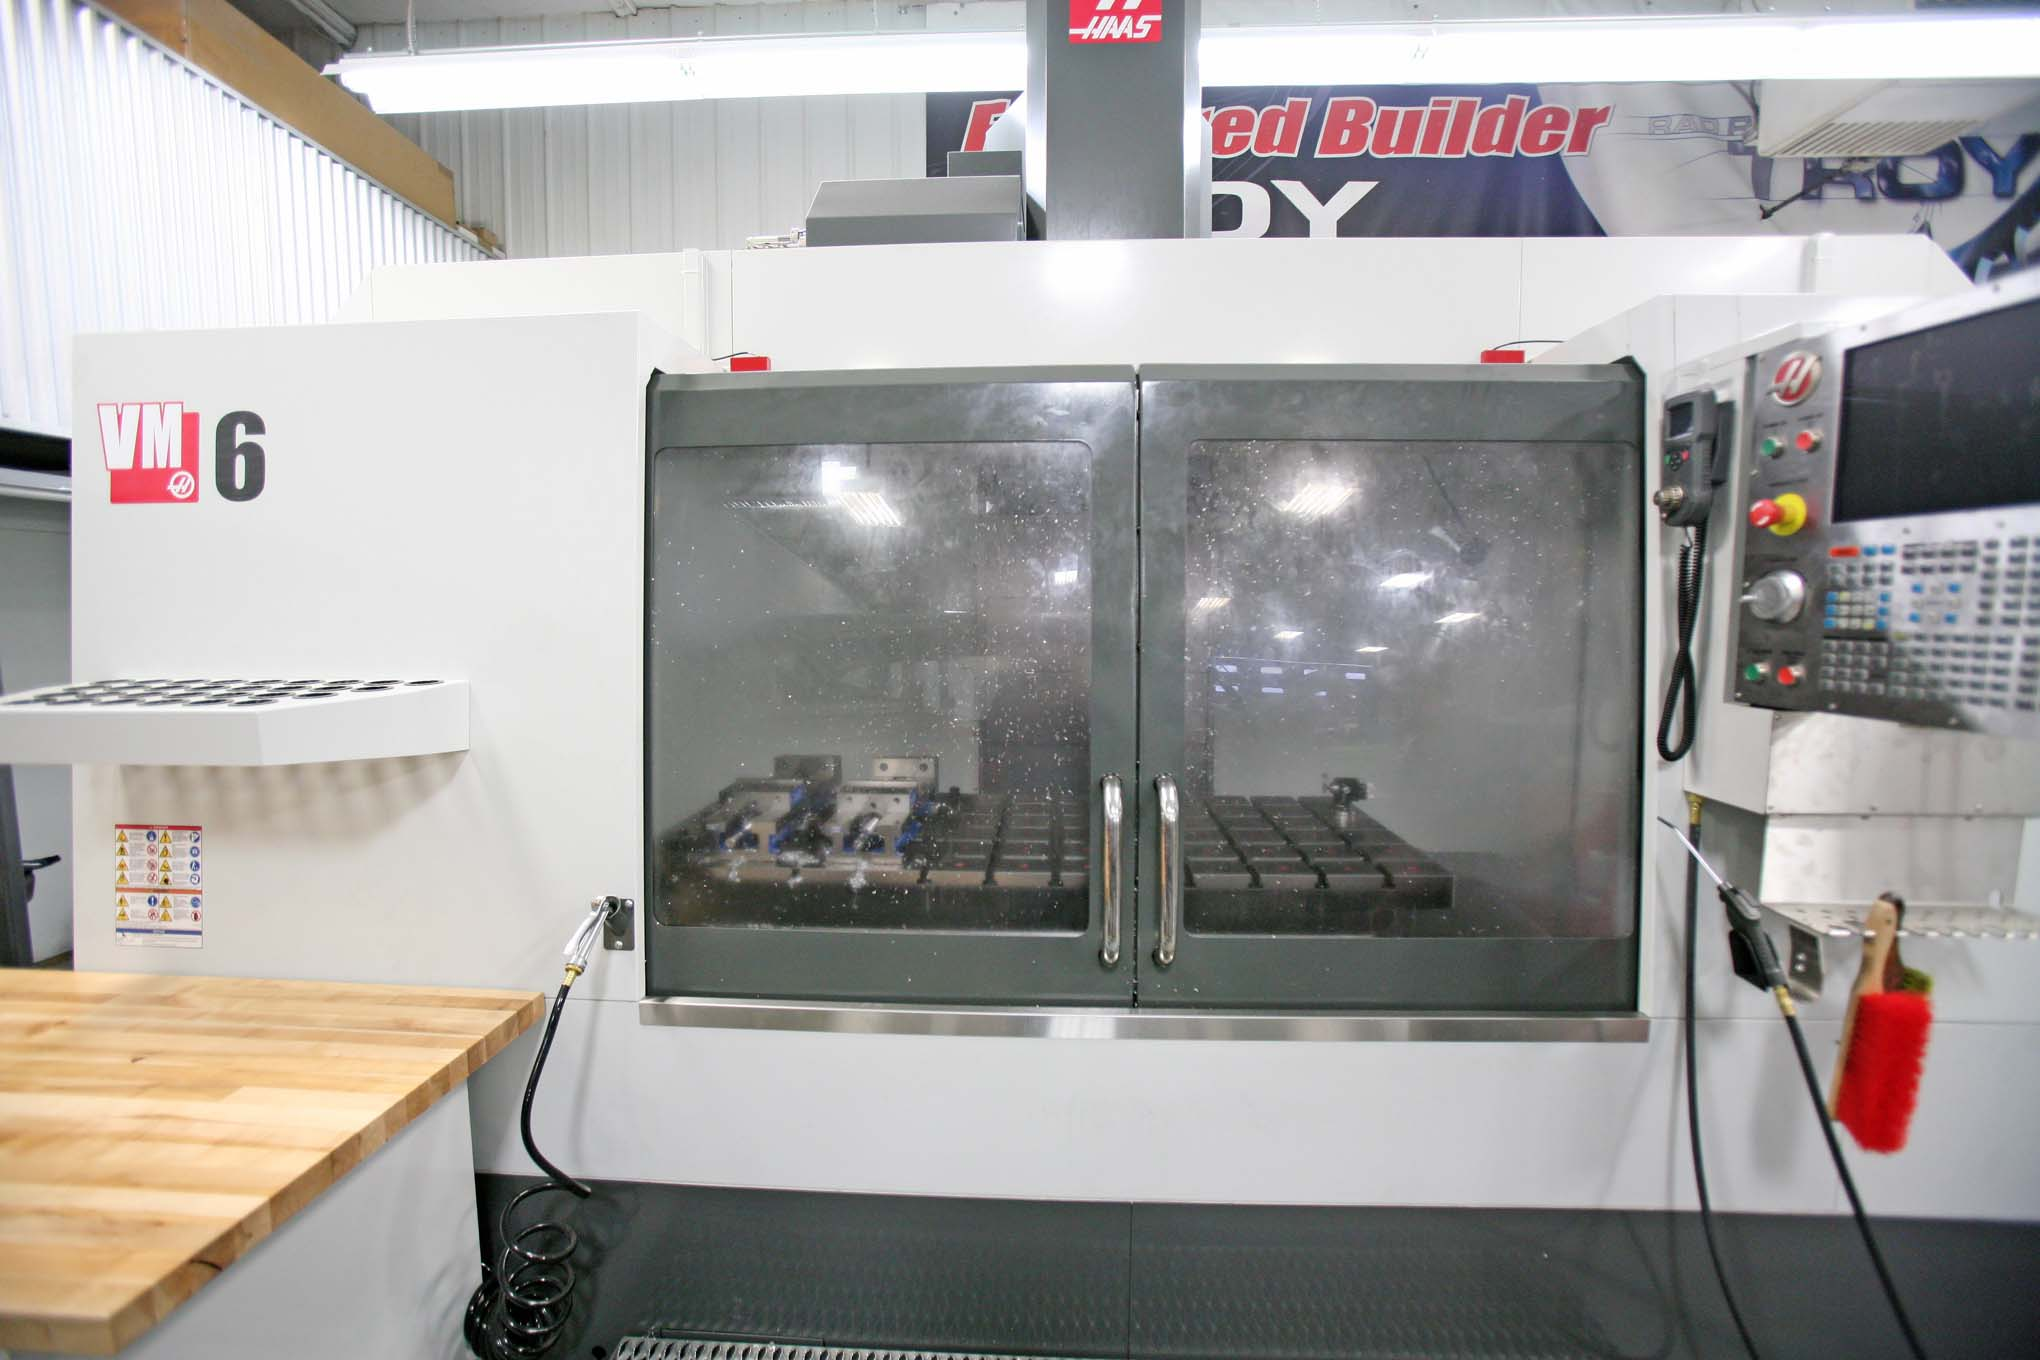 This is the shop's newest tool, a huge CNC machine capable of 64 and 32 inches of travel on the X and Y axes, respectively. That's more than enough travel to machine wheels, which was the first job of the new tool. They're destined for the Speed Demon Team streamliner currently being built in Ventura, California.